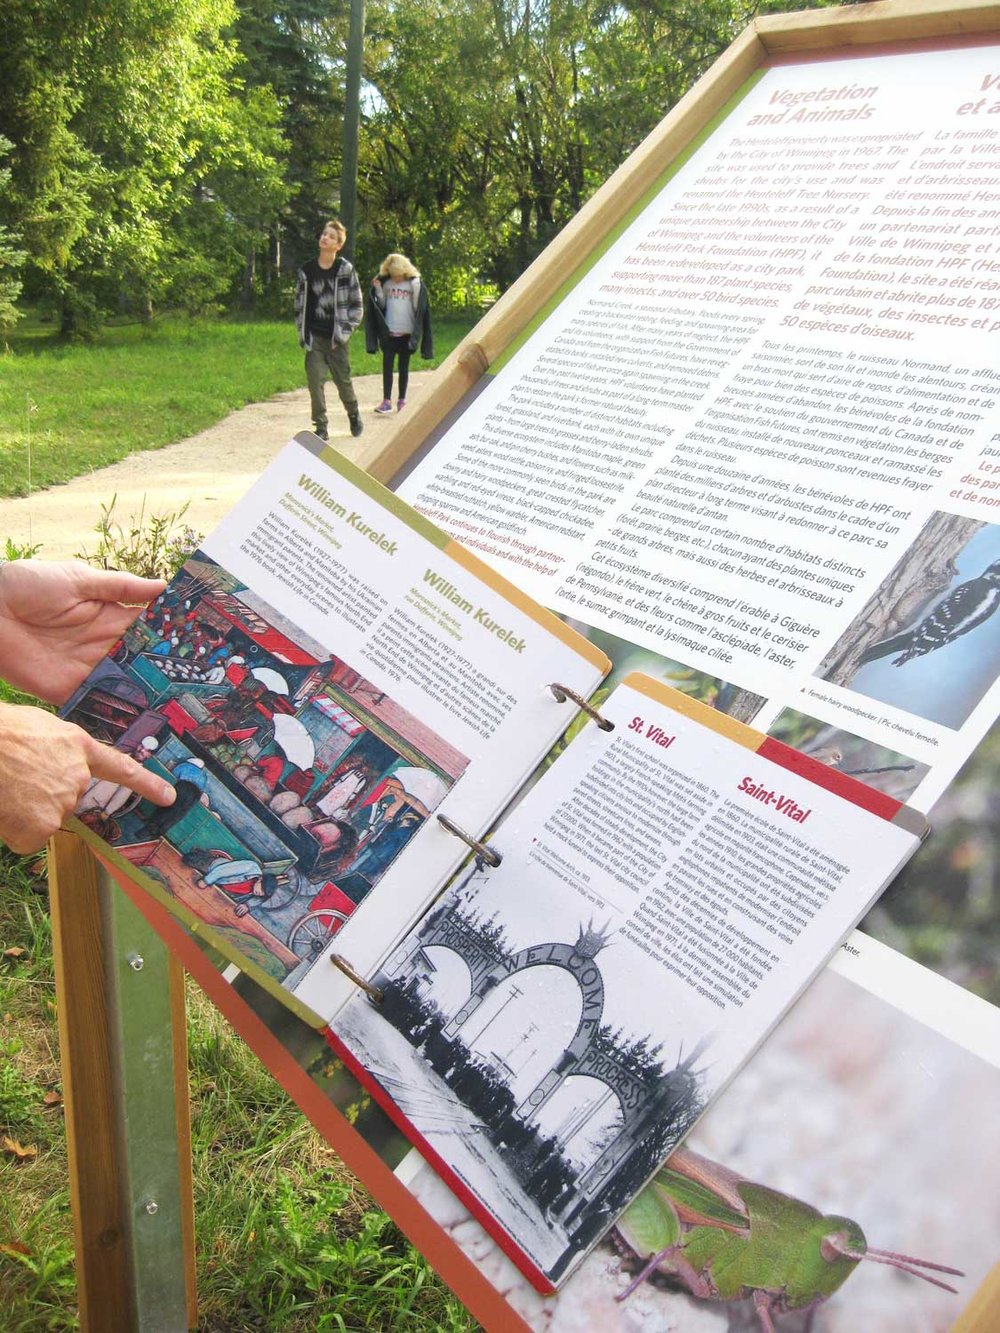 Flip books were adhered to some signs giving further details about the park and it's interesting history.